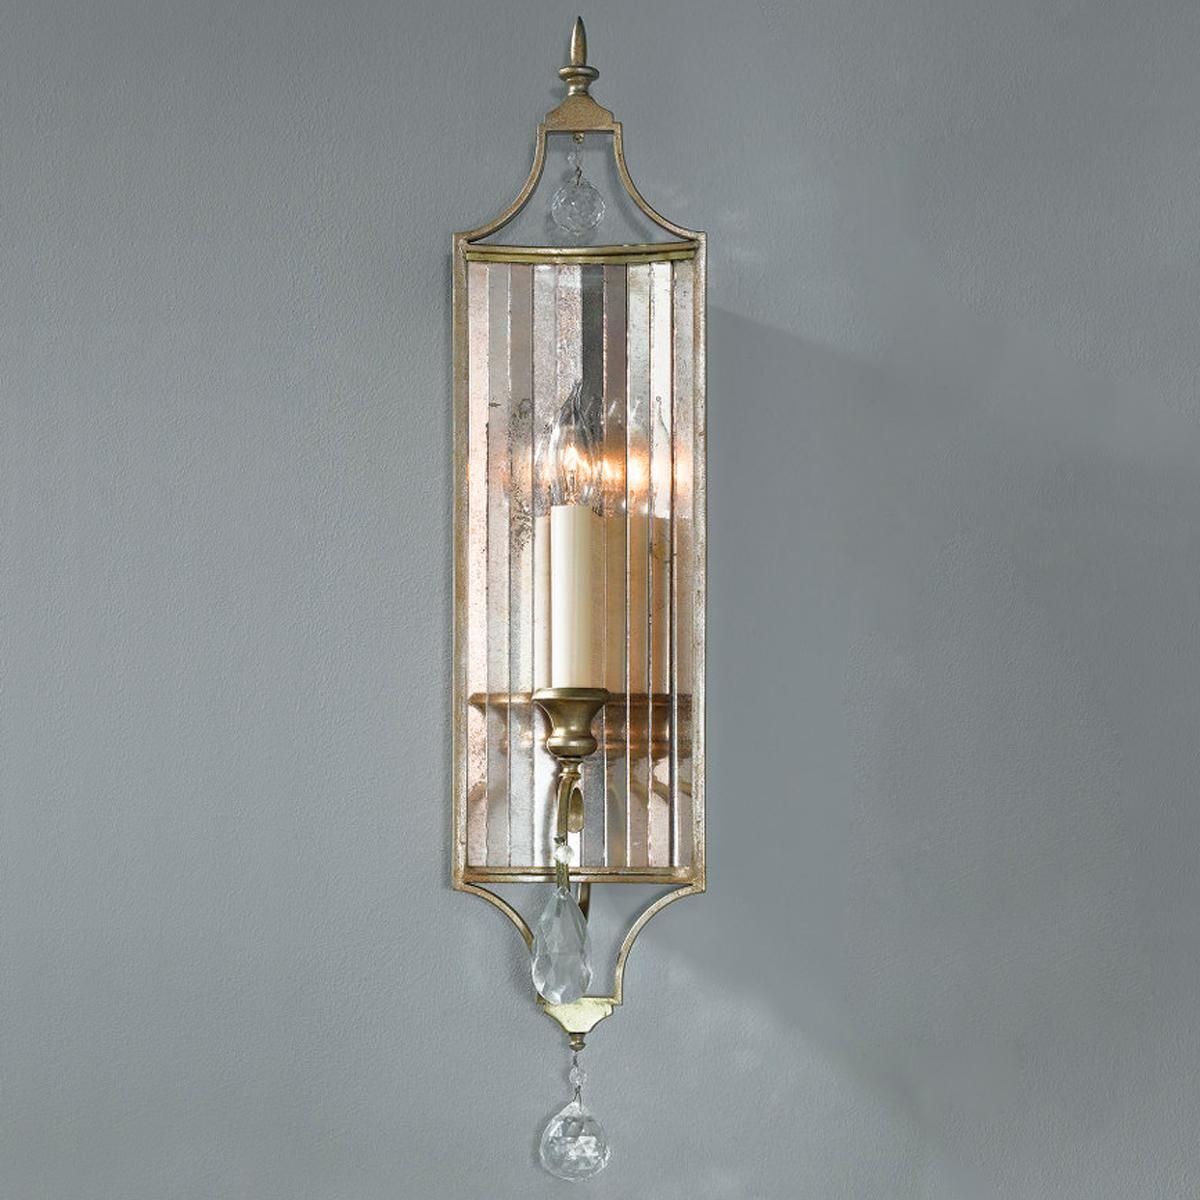 Channel Antiqued Mirror Sconce Foyer Amp Entrance Way